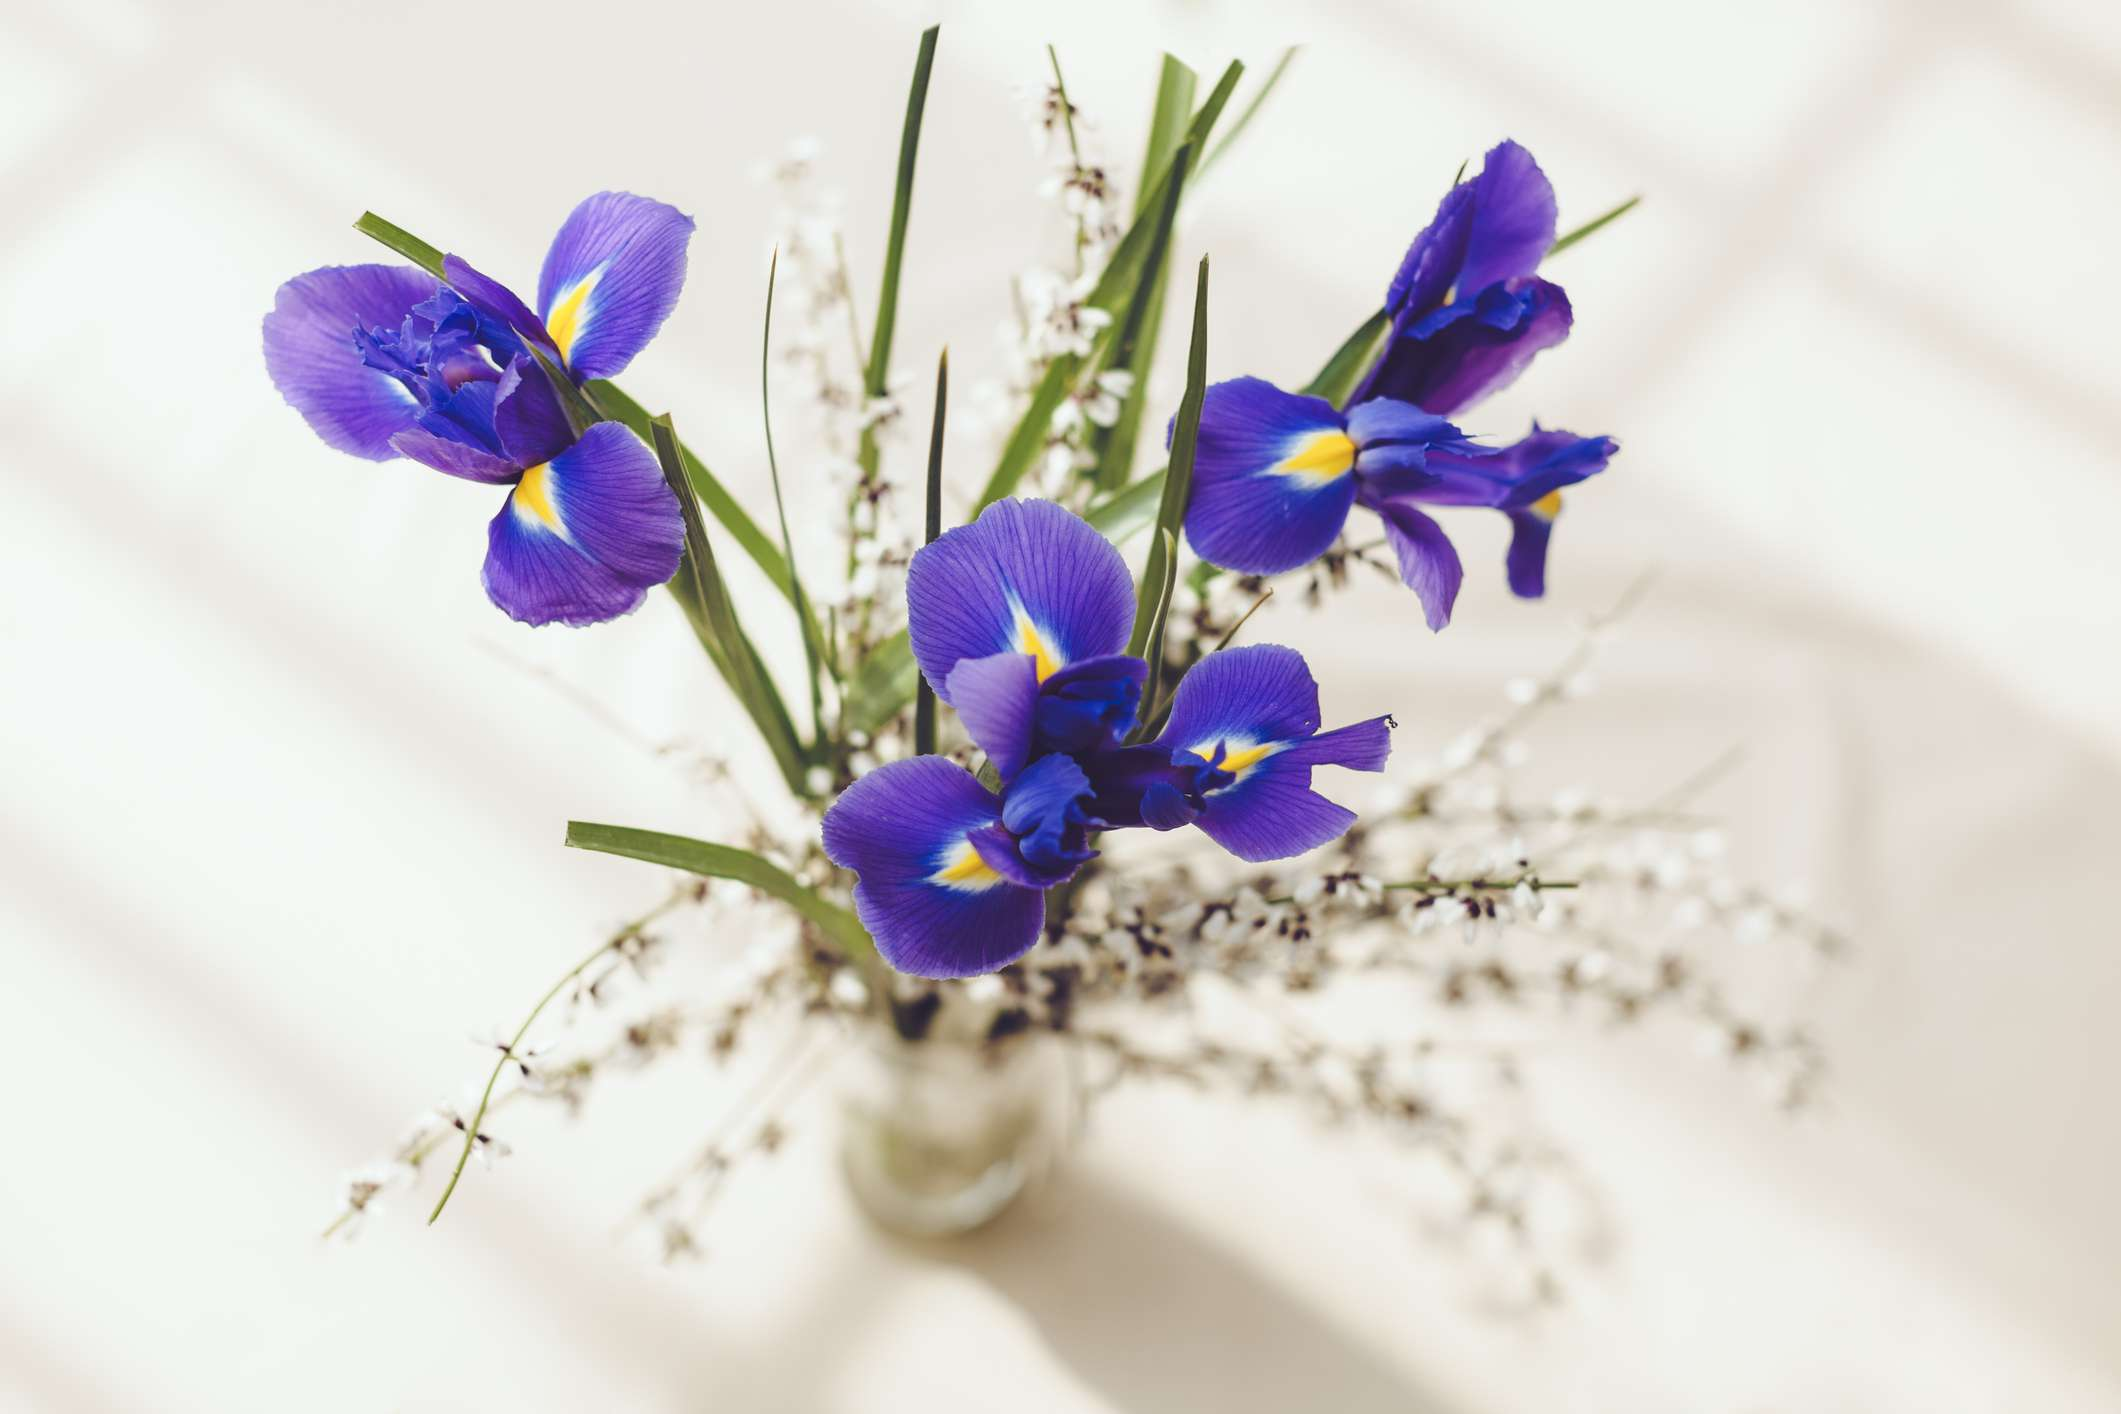 Irises in a vase on a table